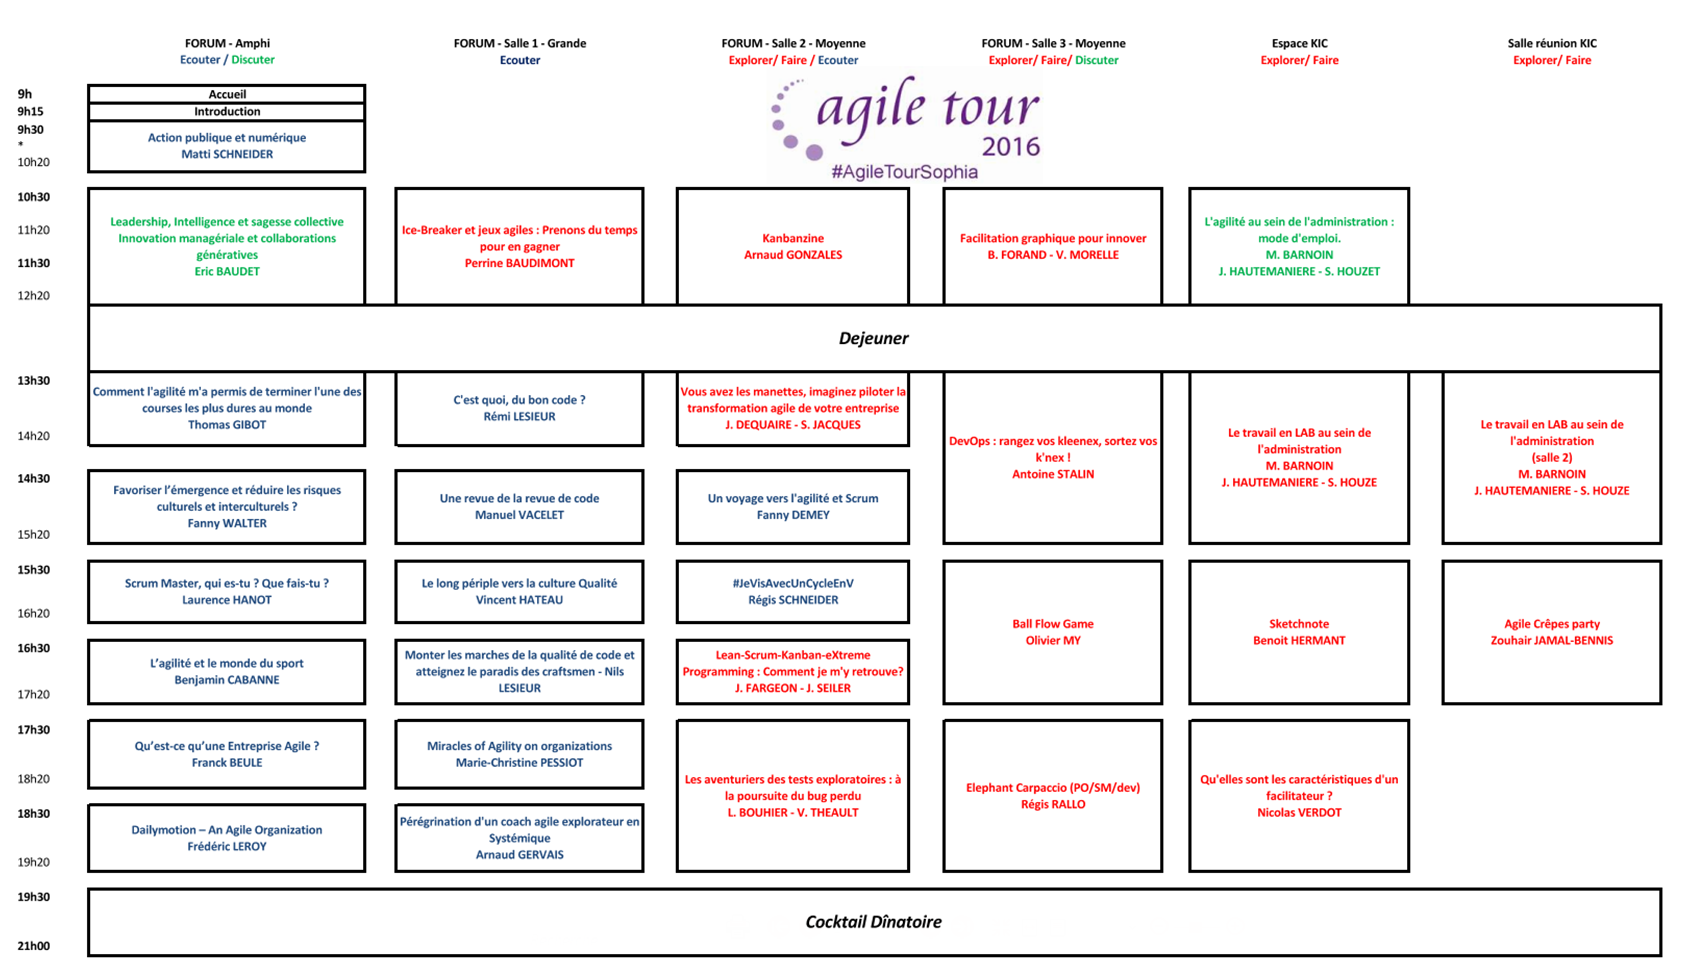 http://at2016.agiletour.org/files/ProgrammeATSA-v1.6.png